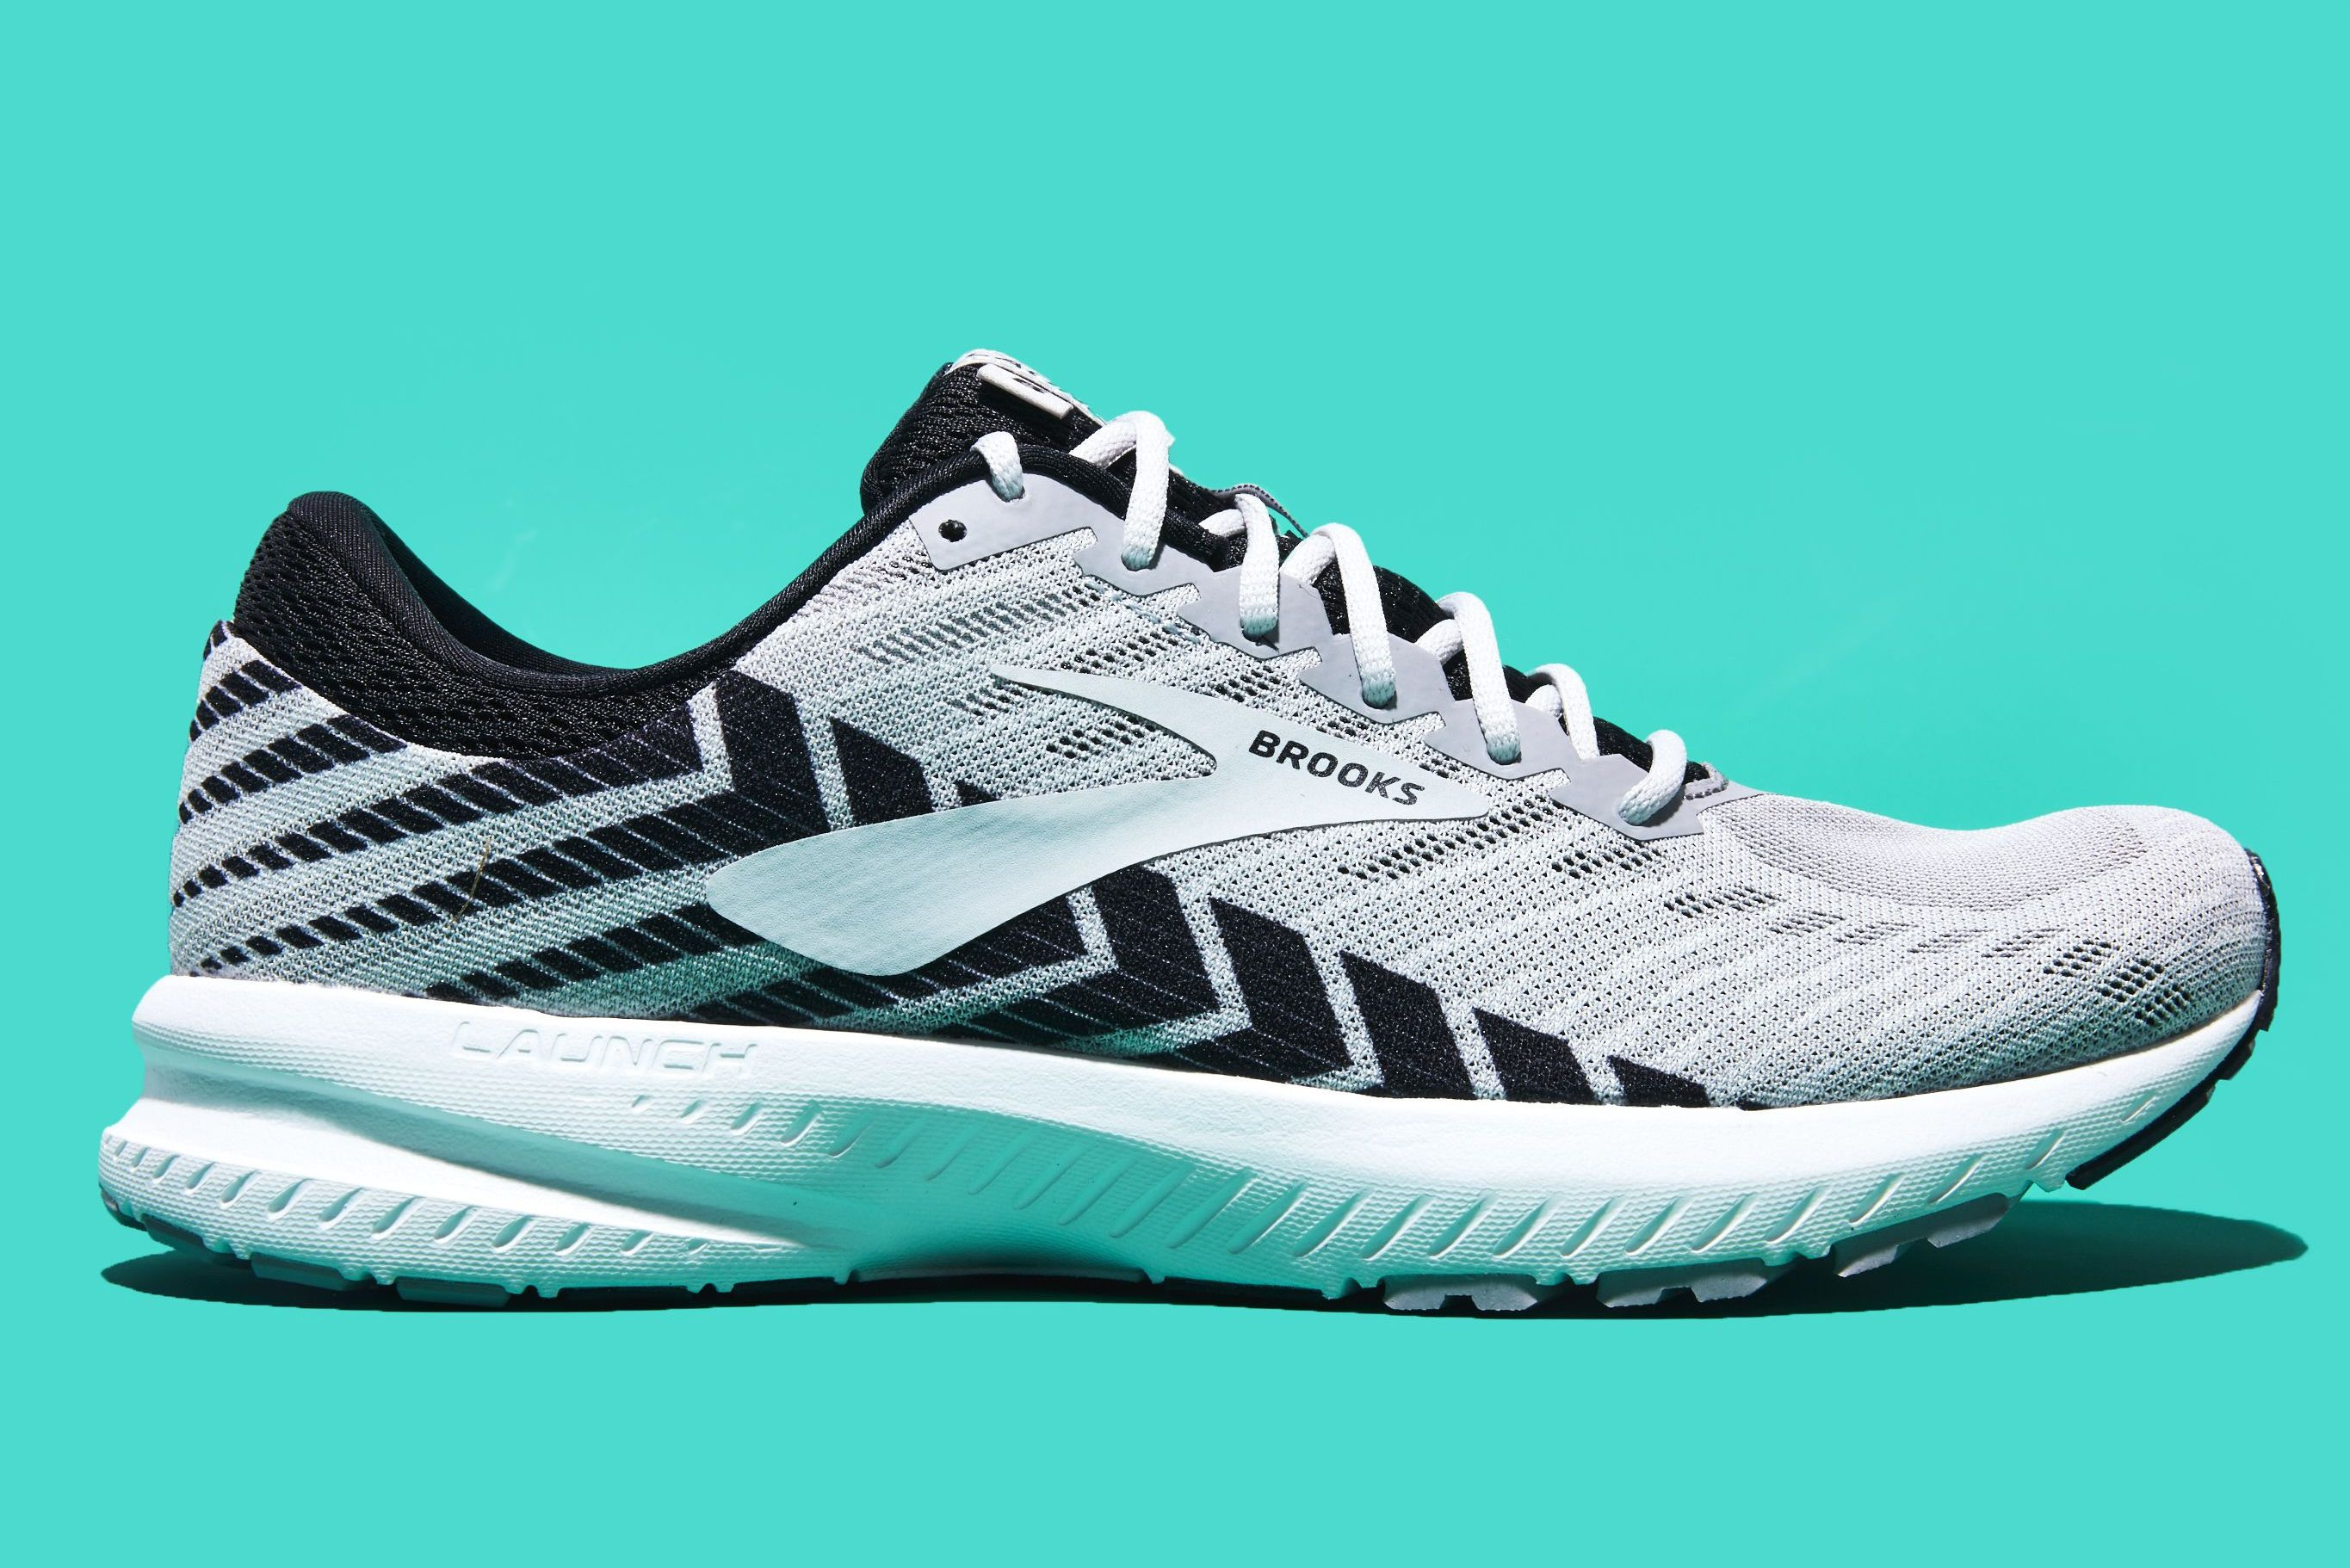 a2dcda53499 Brooks Launch 6 - Best Affordable Neutral Running Shoes